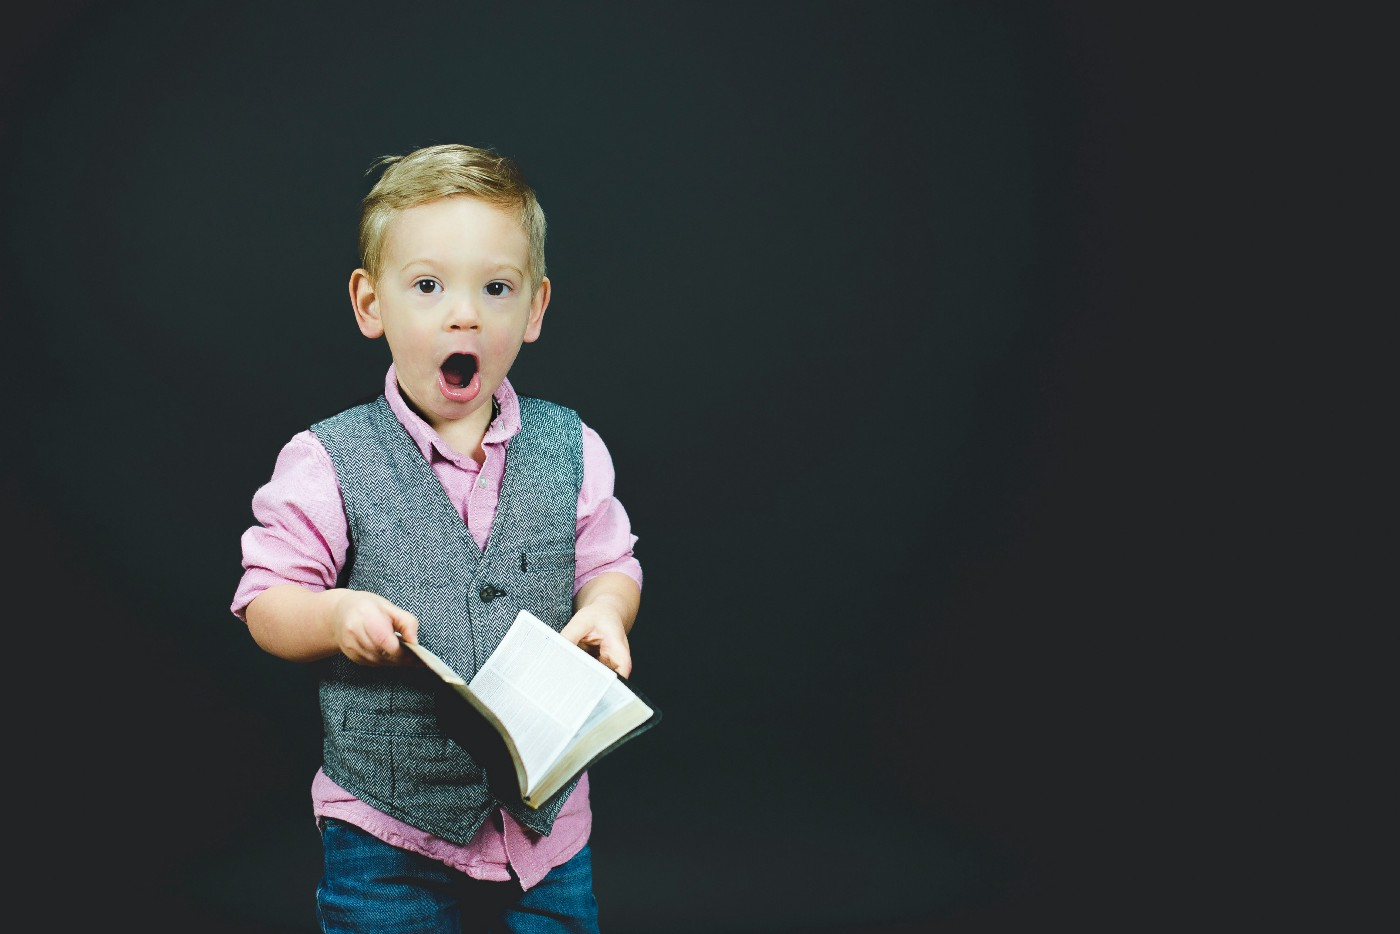 A little boy standing in front of black background dressed with a pick shirt, a gray best, and blue trouser. With a book opened in his hands, he looks at the camera like he is surprised — his eyes and mouth are open.